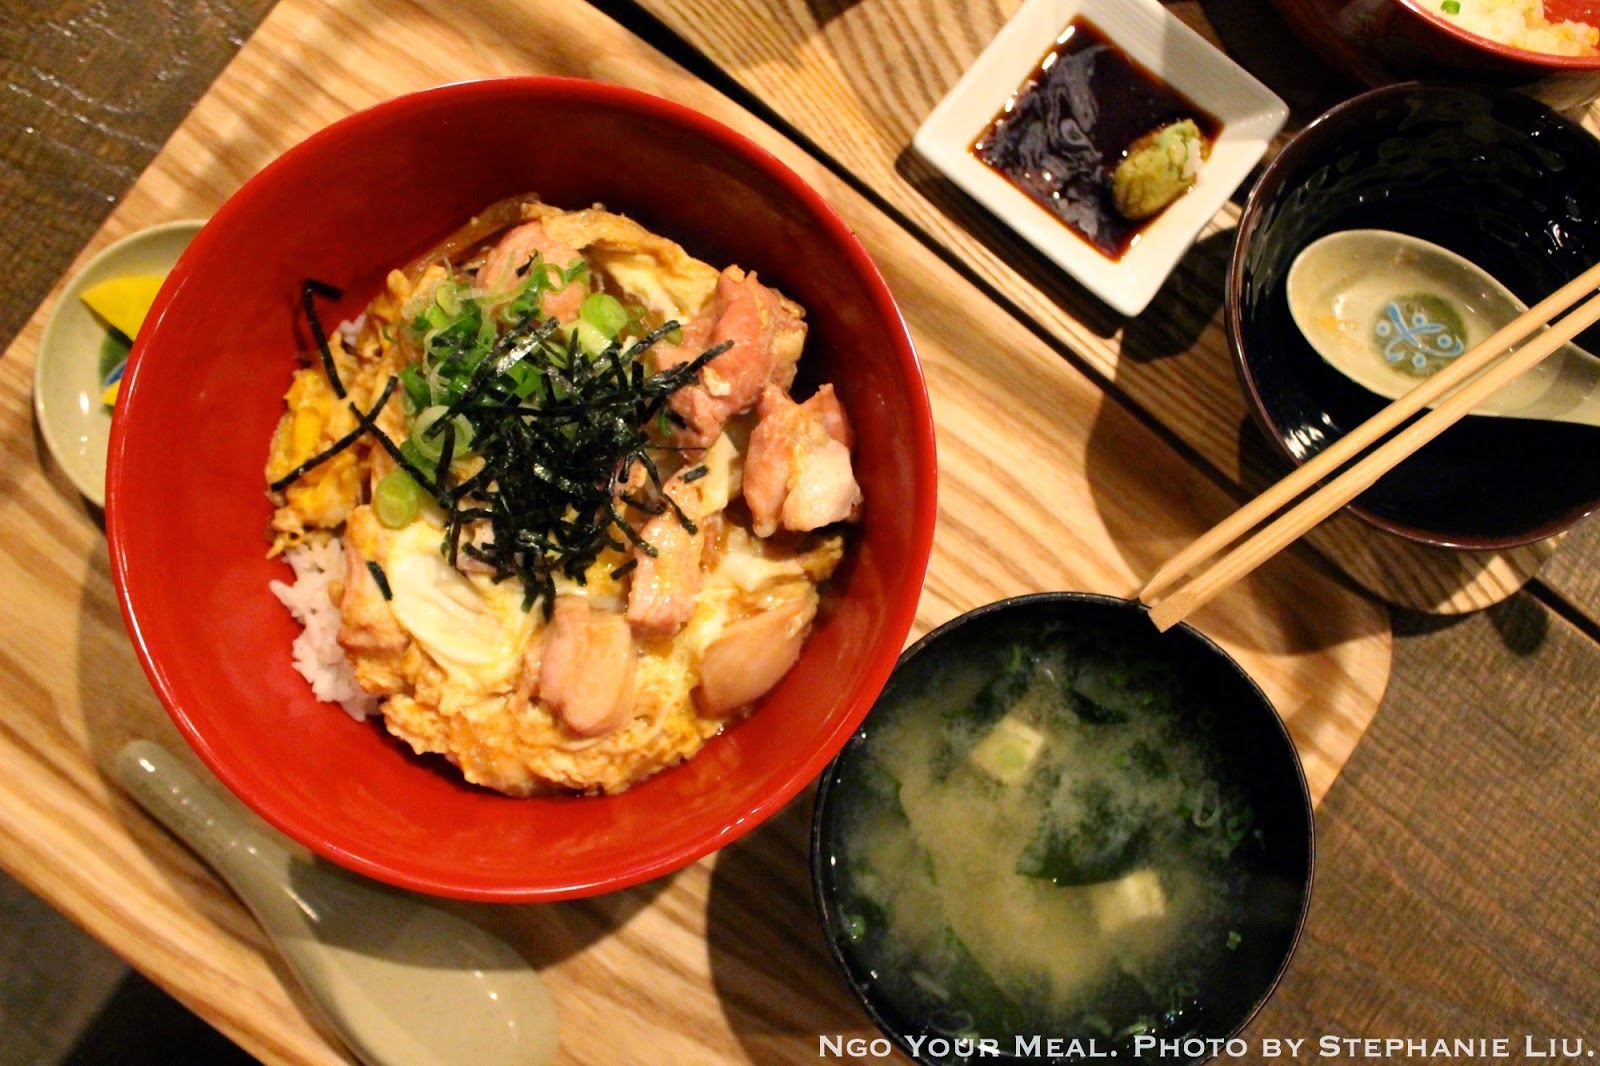 Oyako Don: Simmered Chicken and Egg over rice at Izakaya Mew.